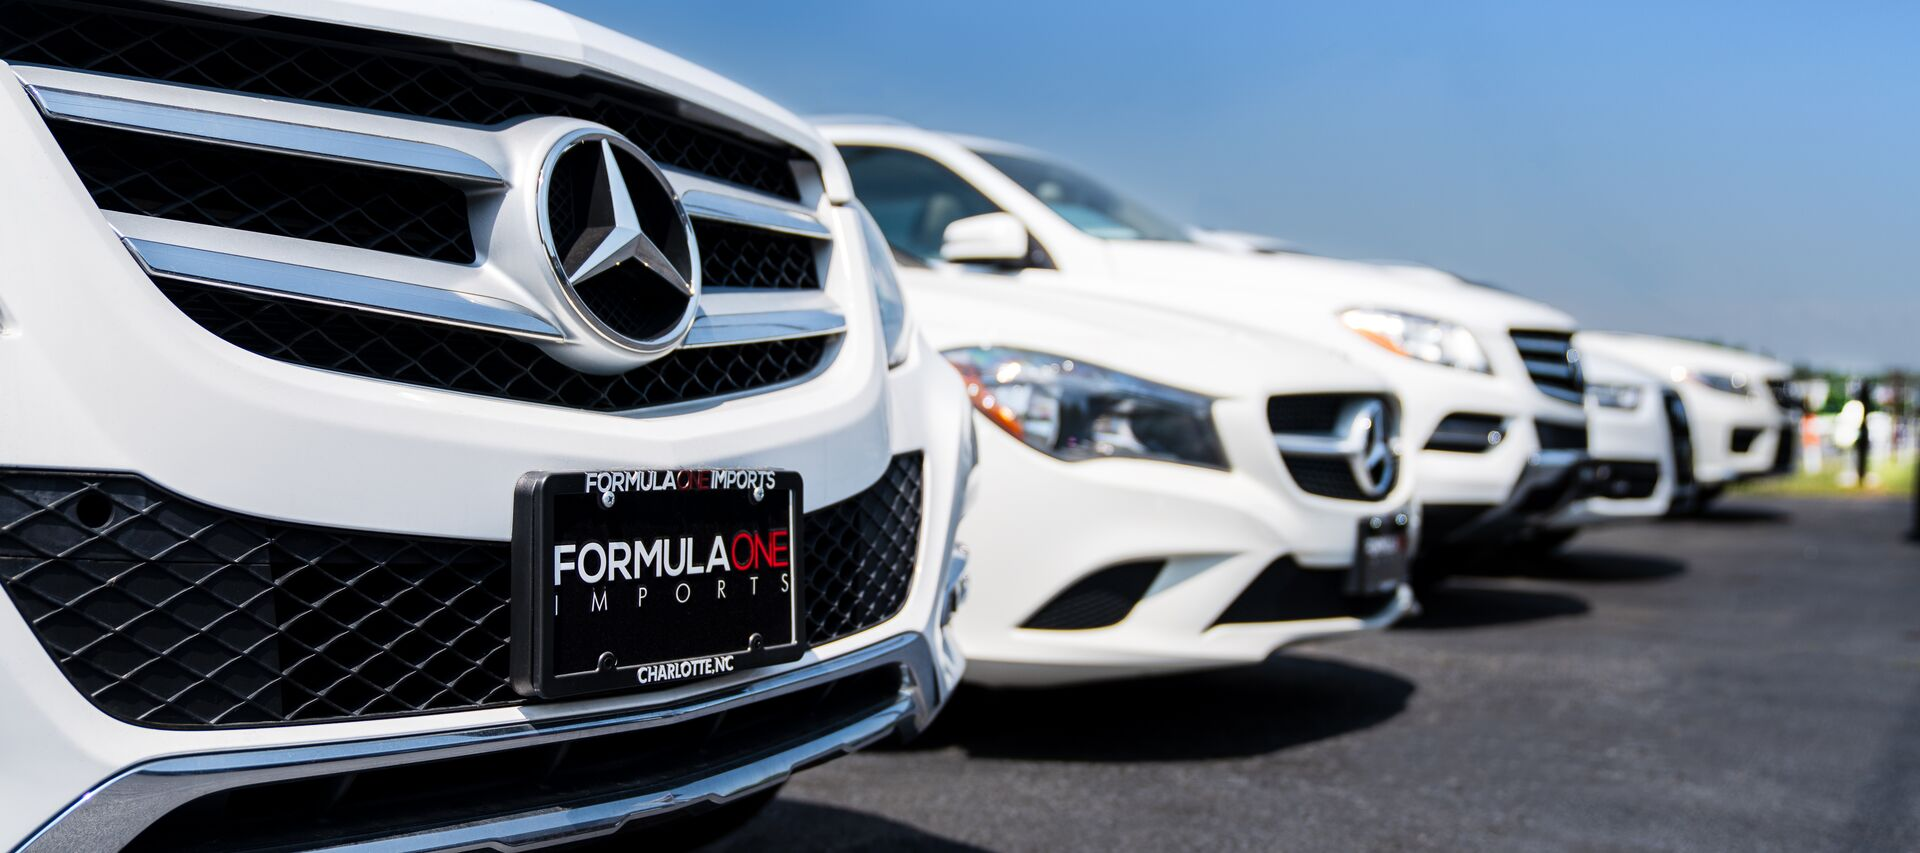 Charlotte Used Luxury Cars for Sale: Foreign Vehicles | Formula One